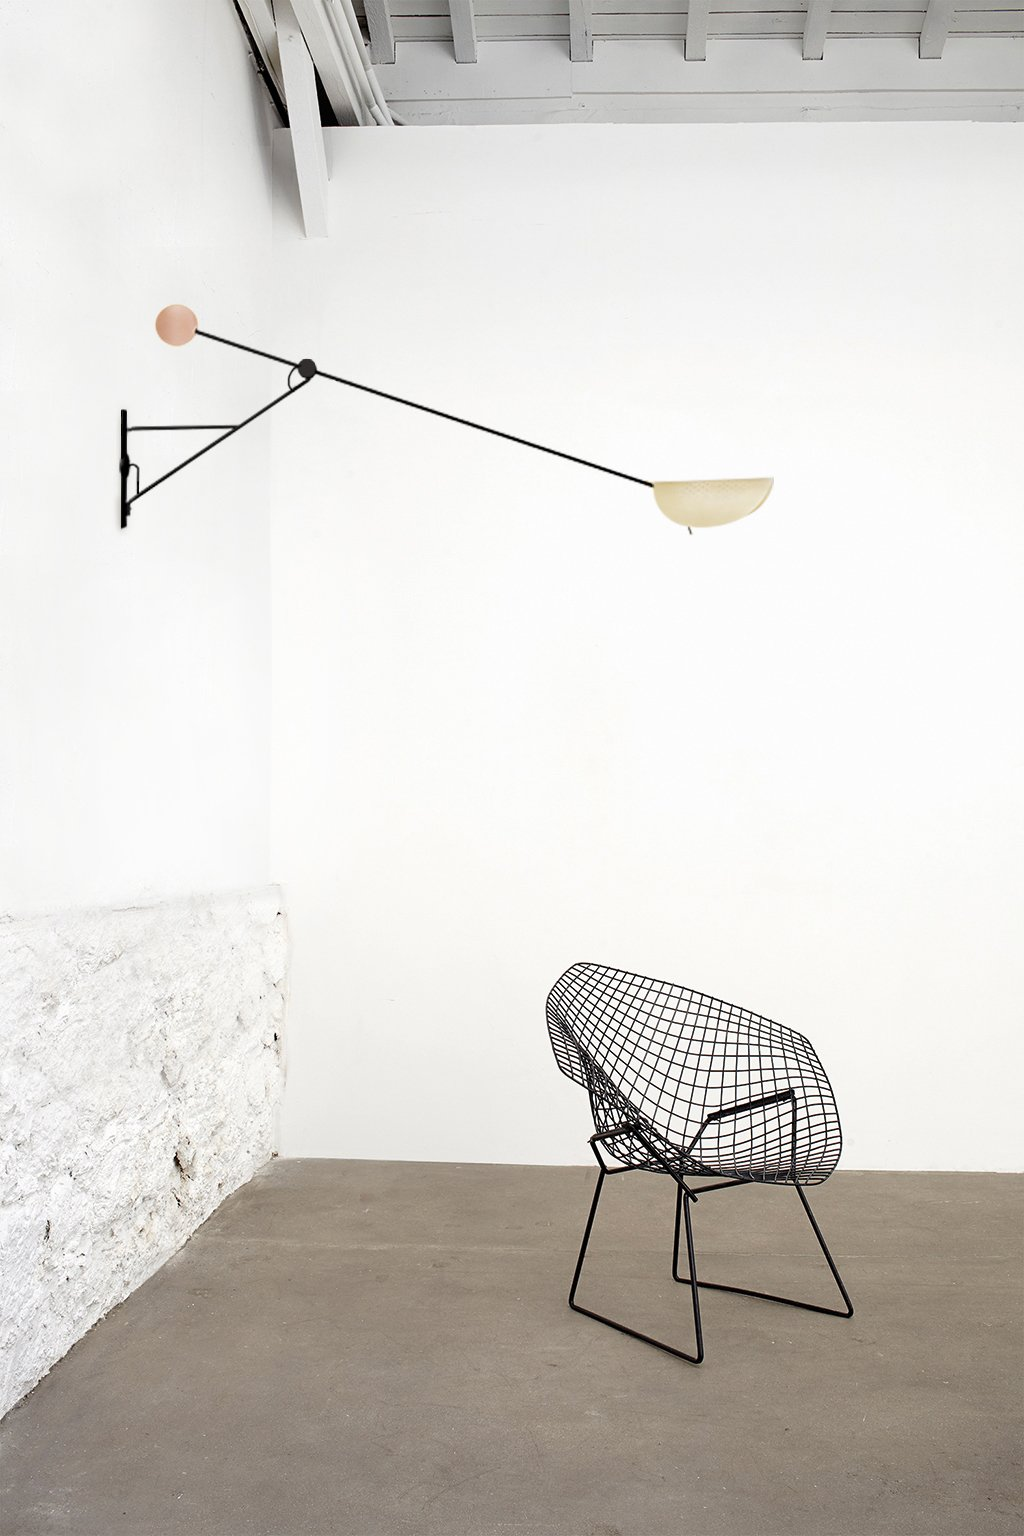 The Biennale Emergences has distinguished several actors of French design emerging to follow very closely...